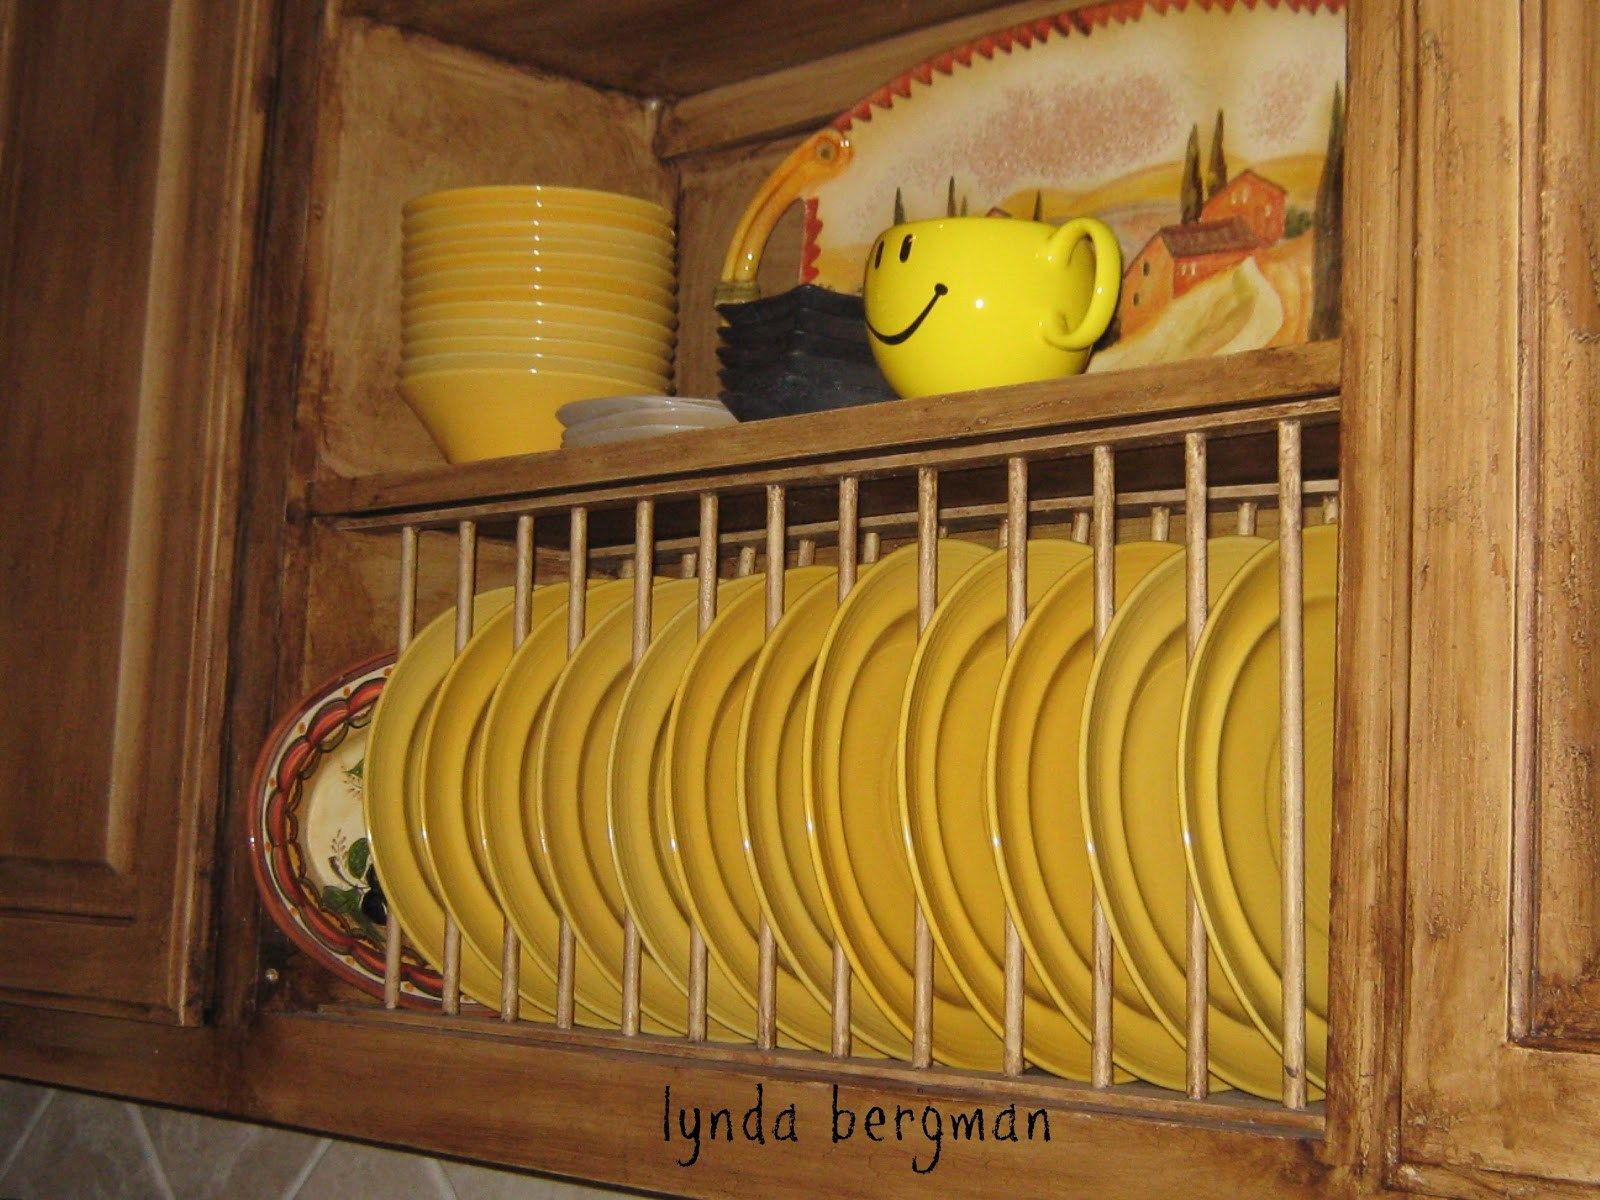 lynda bergman decorative artisan how to build install a plate ...